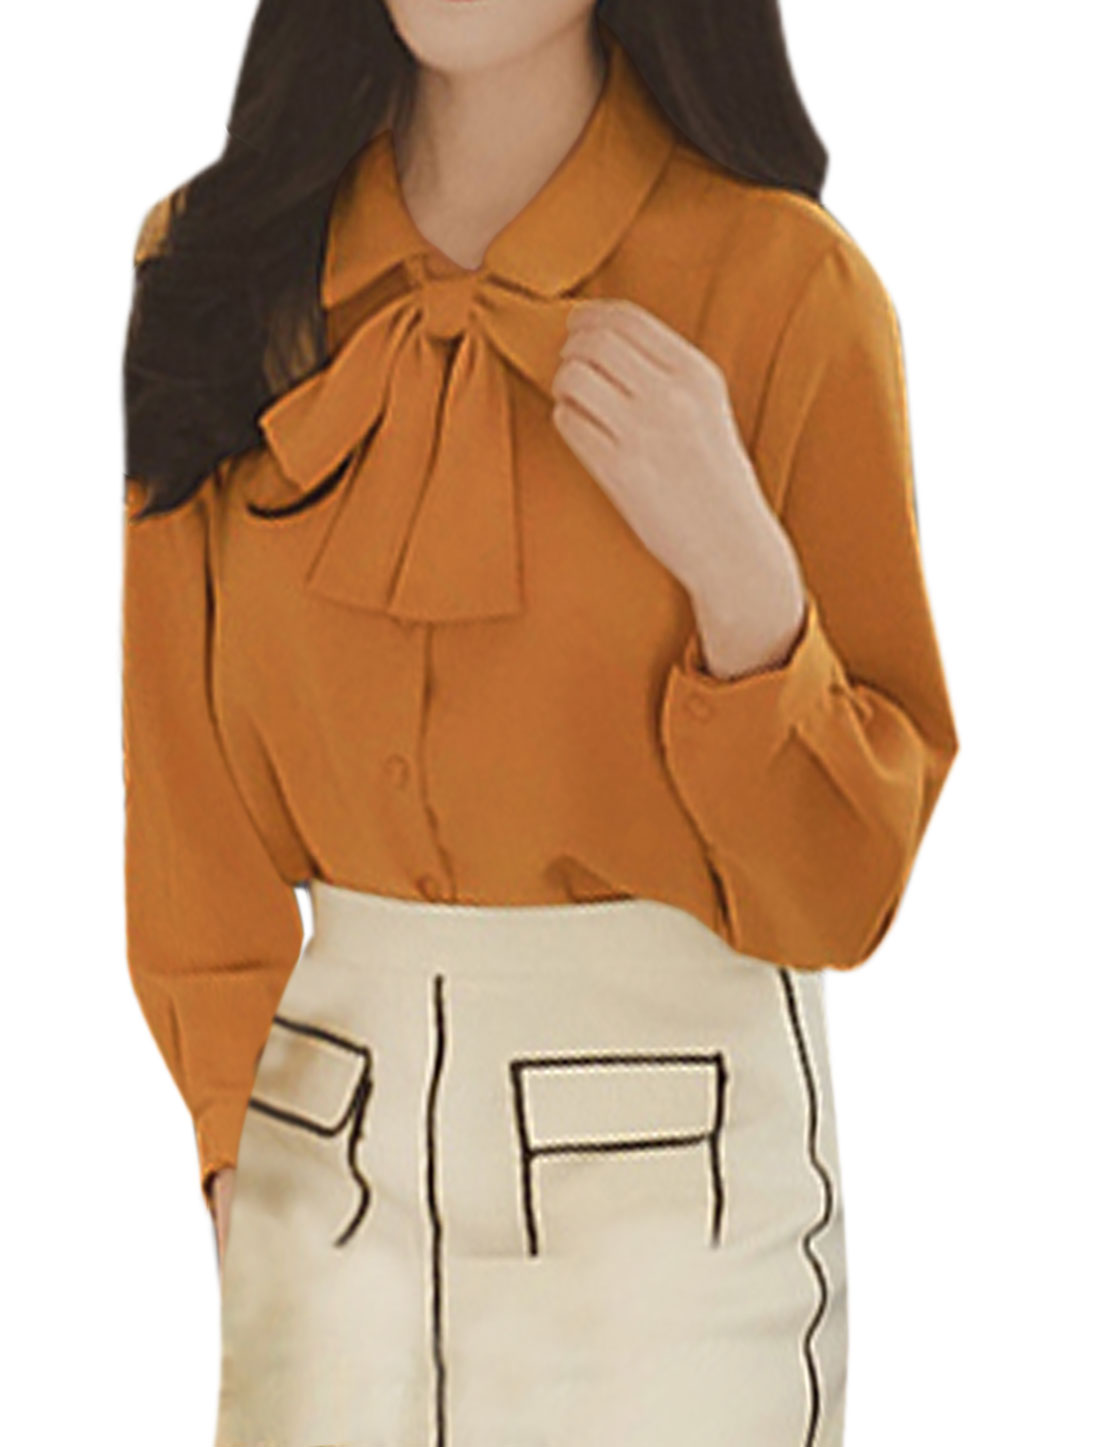 Women Point Collar Single Breasted Casual Shirt w Self Tie String Brown XS